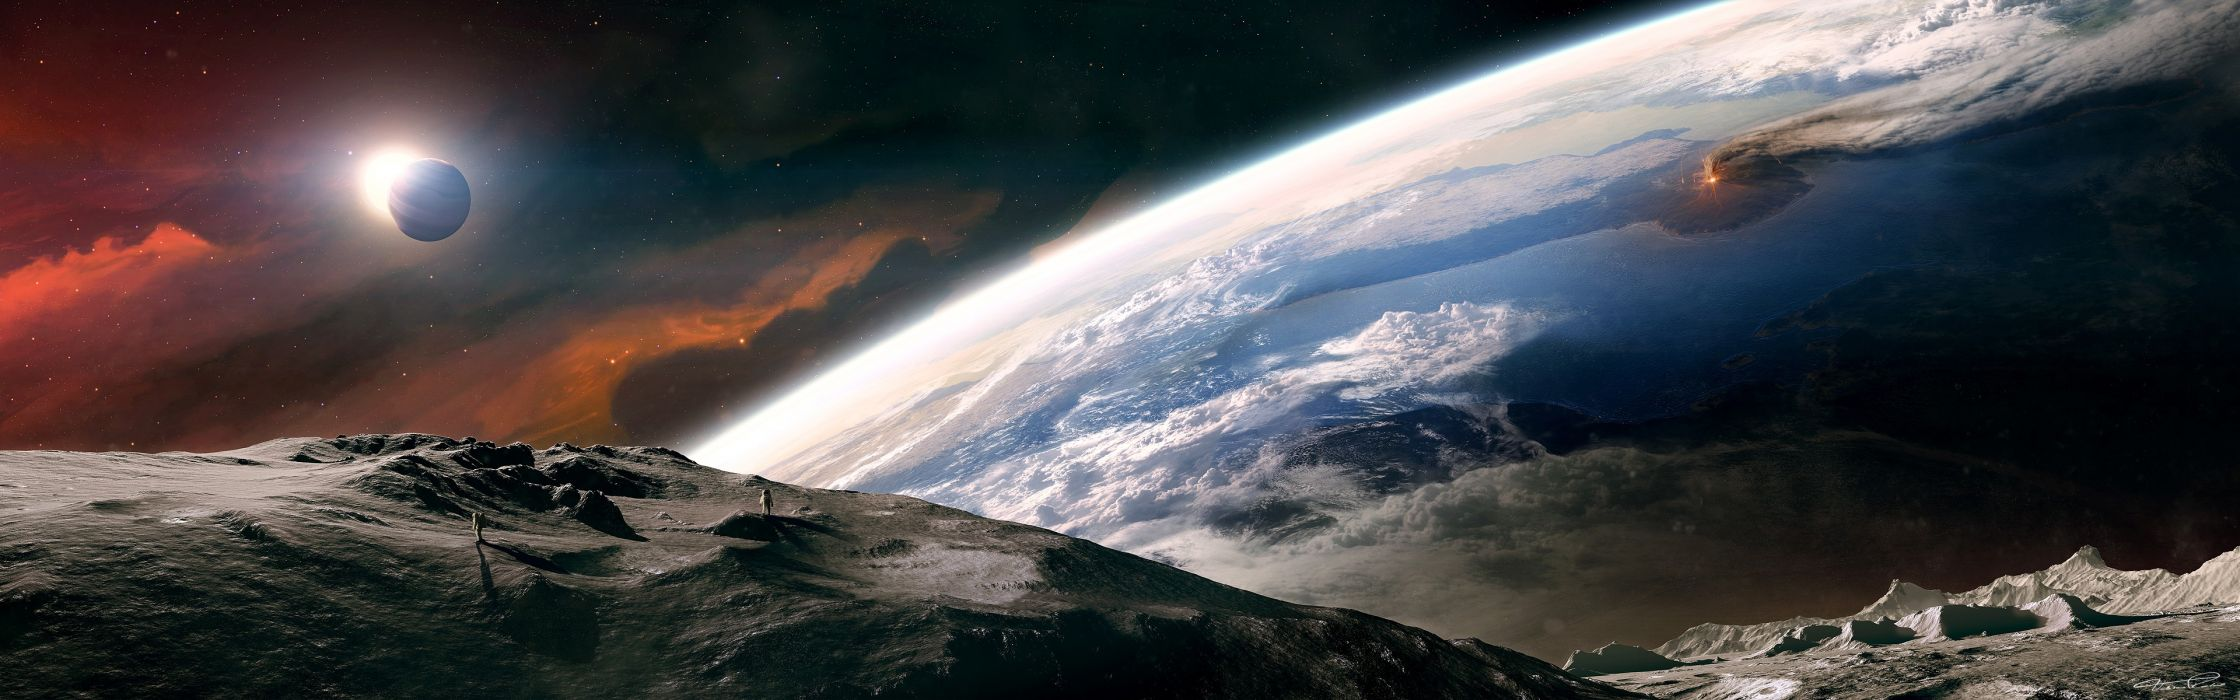 Outer Space Moon Earth Tranquility Dual Monitor Wallpaper